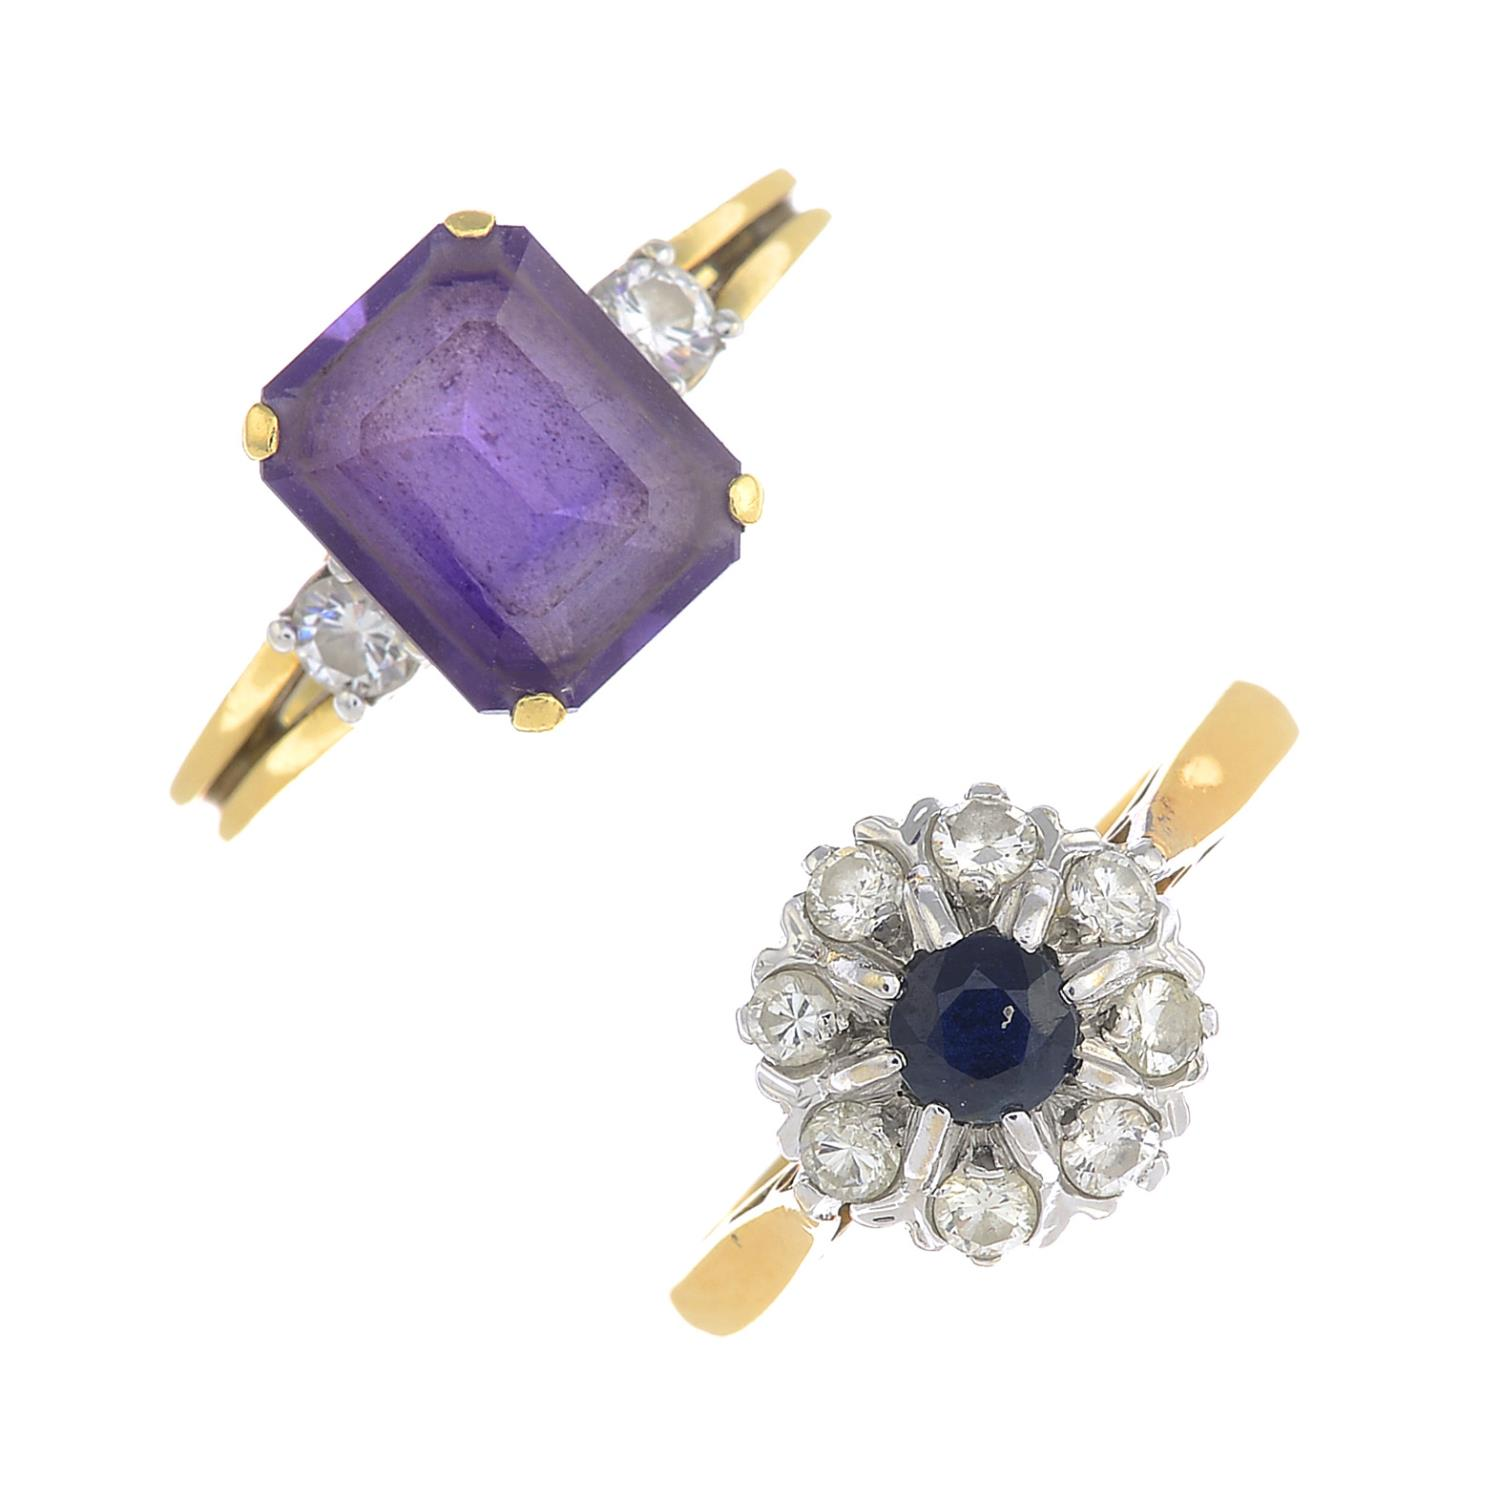 Lot 54 - Two diamond and gem-set rings.Amethyst calculated weight 2.95cts,